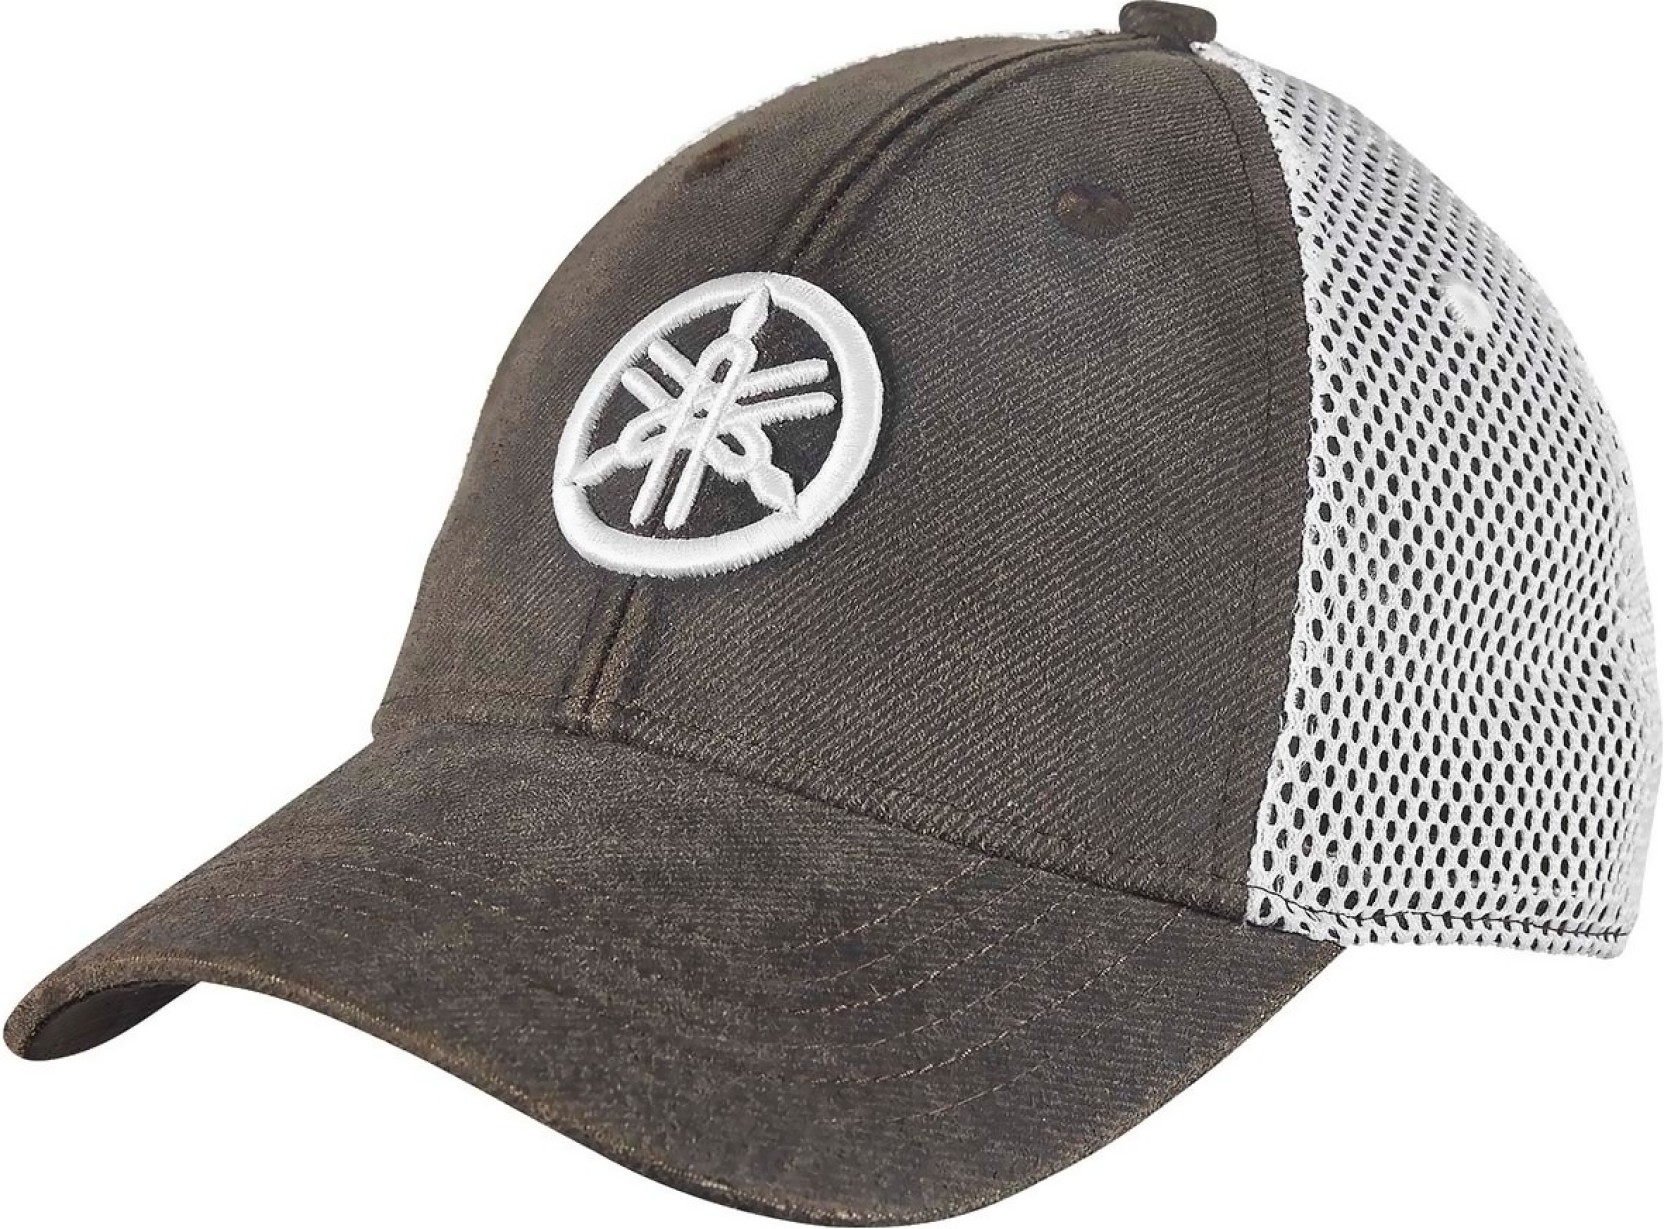 9c78c62a54f Yamaha ball cap buy yamaha ball cap online at best prices in india jpg  1664x1229 Yamaha